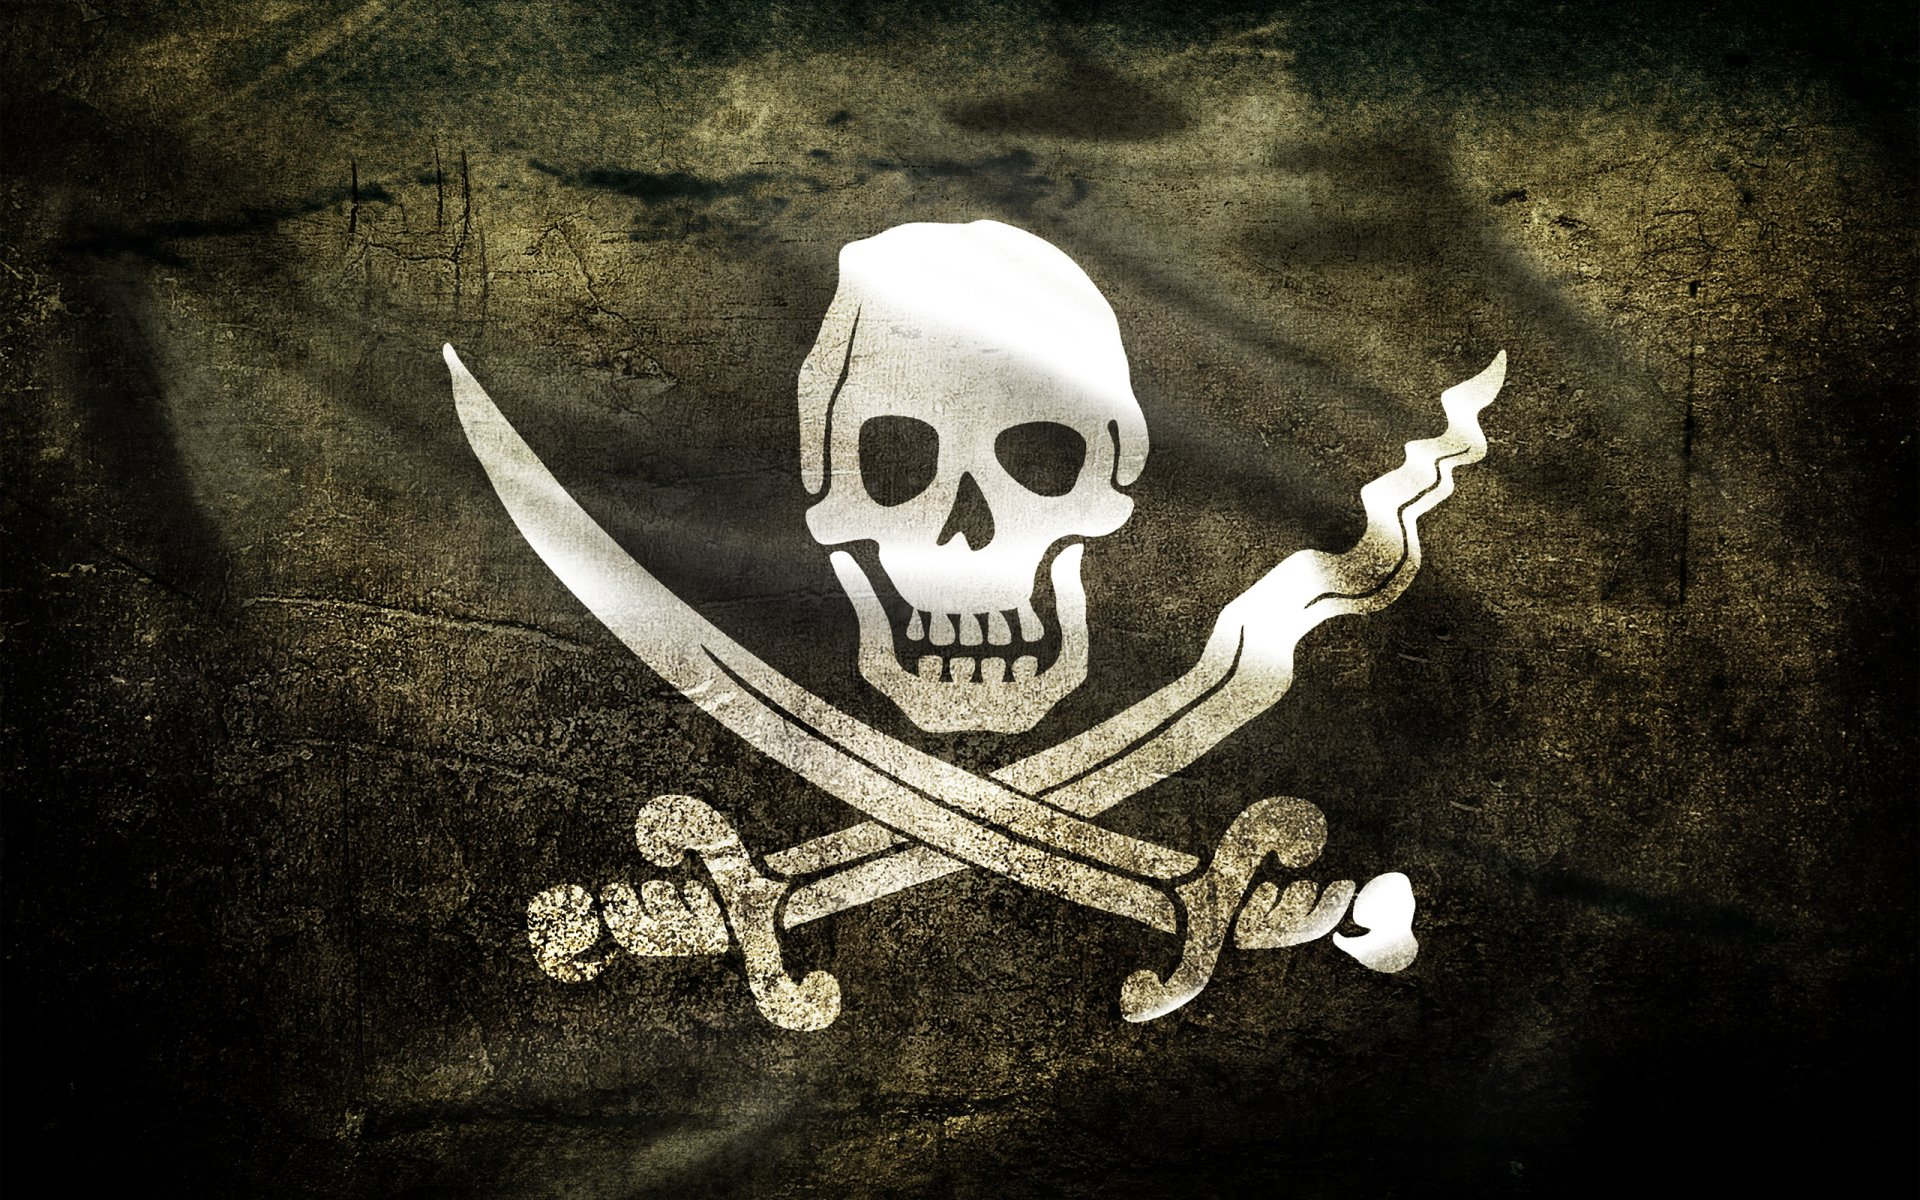 Dark pirate flag 1920x1200 500 wide